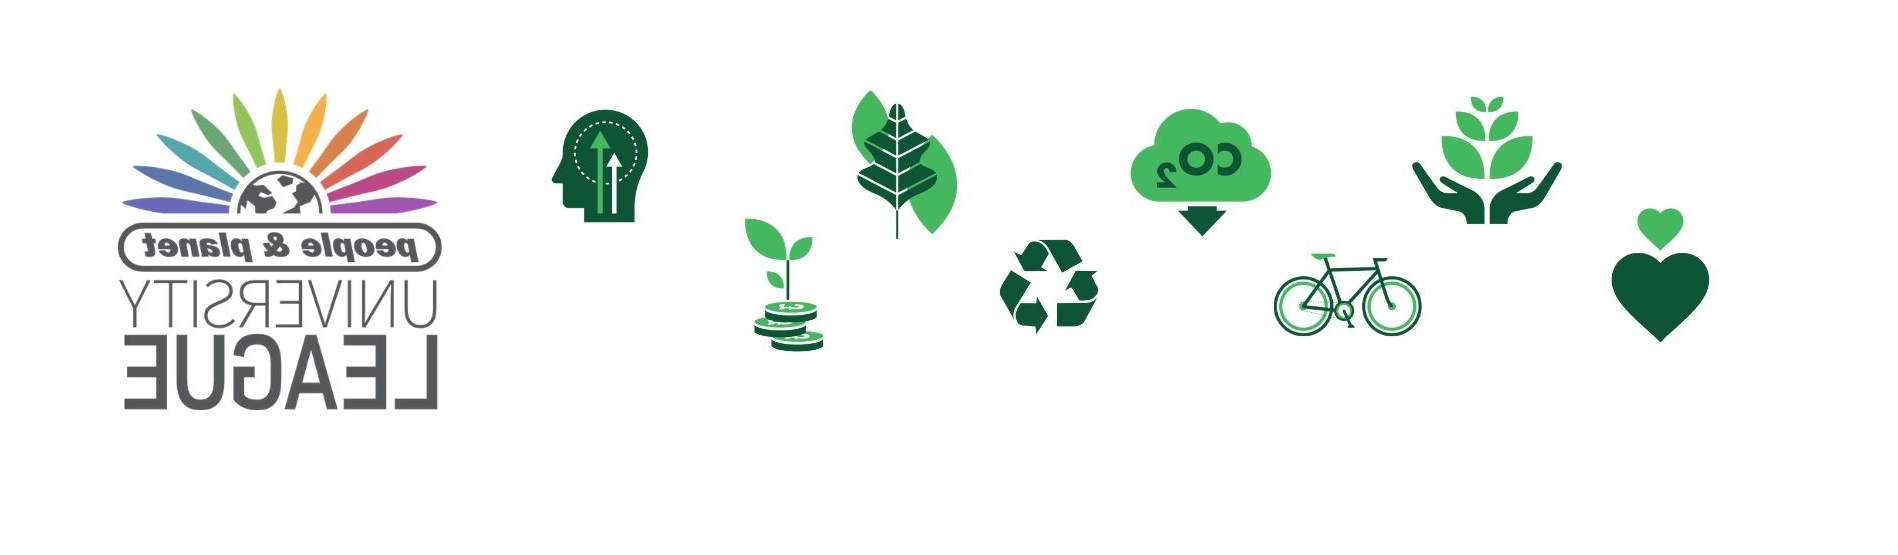 sustainability green icons and people 和 planet award logo